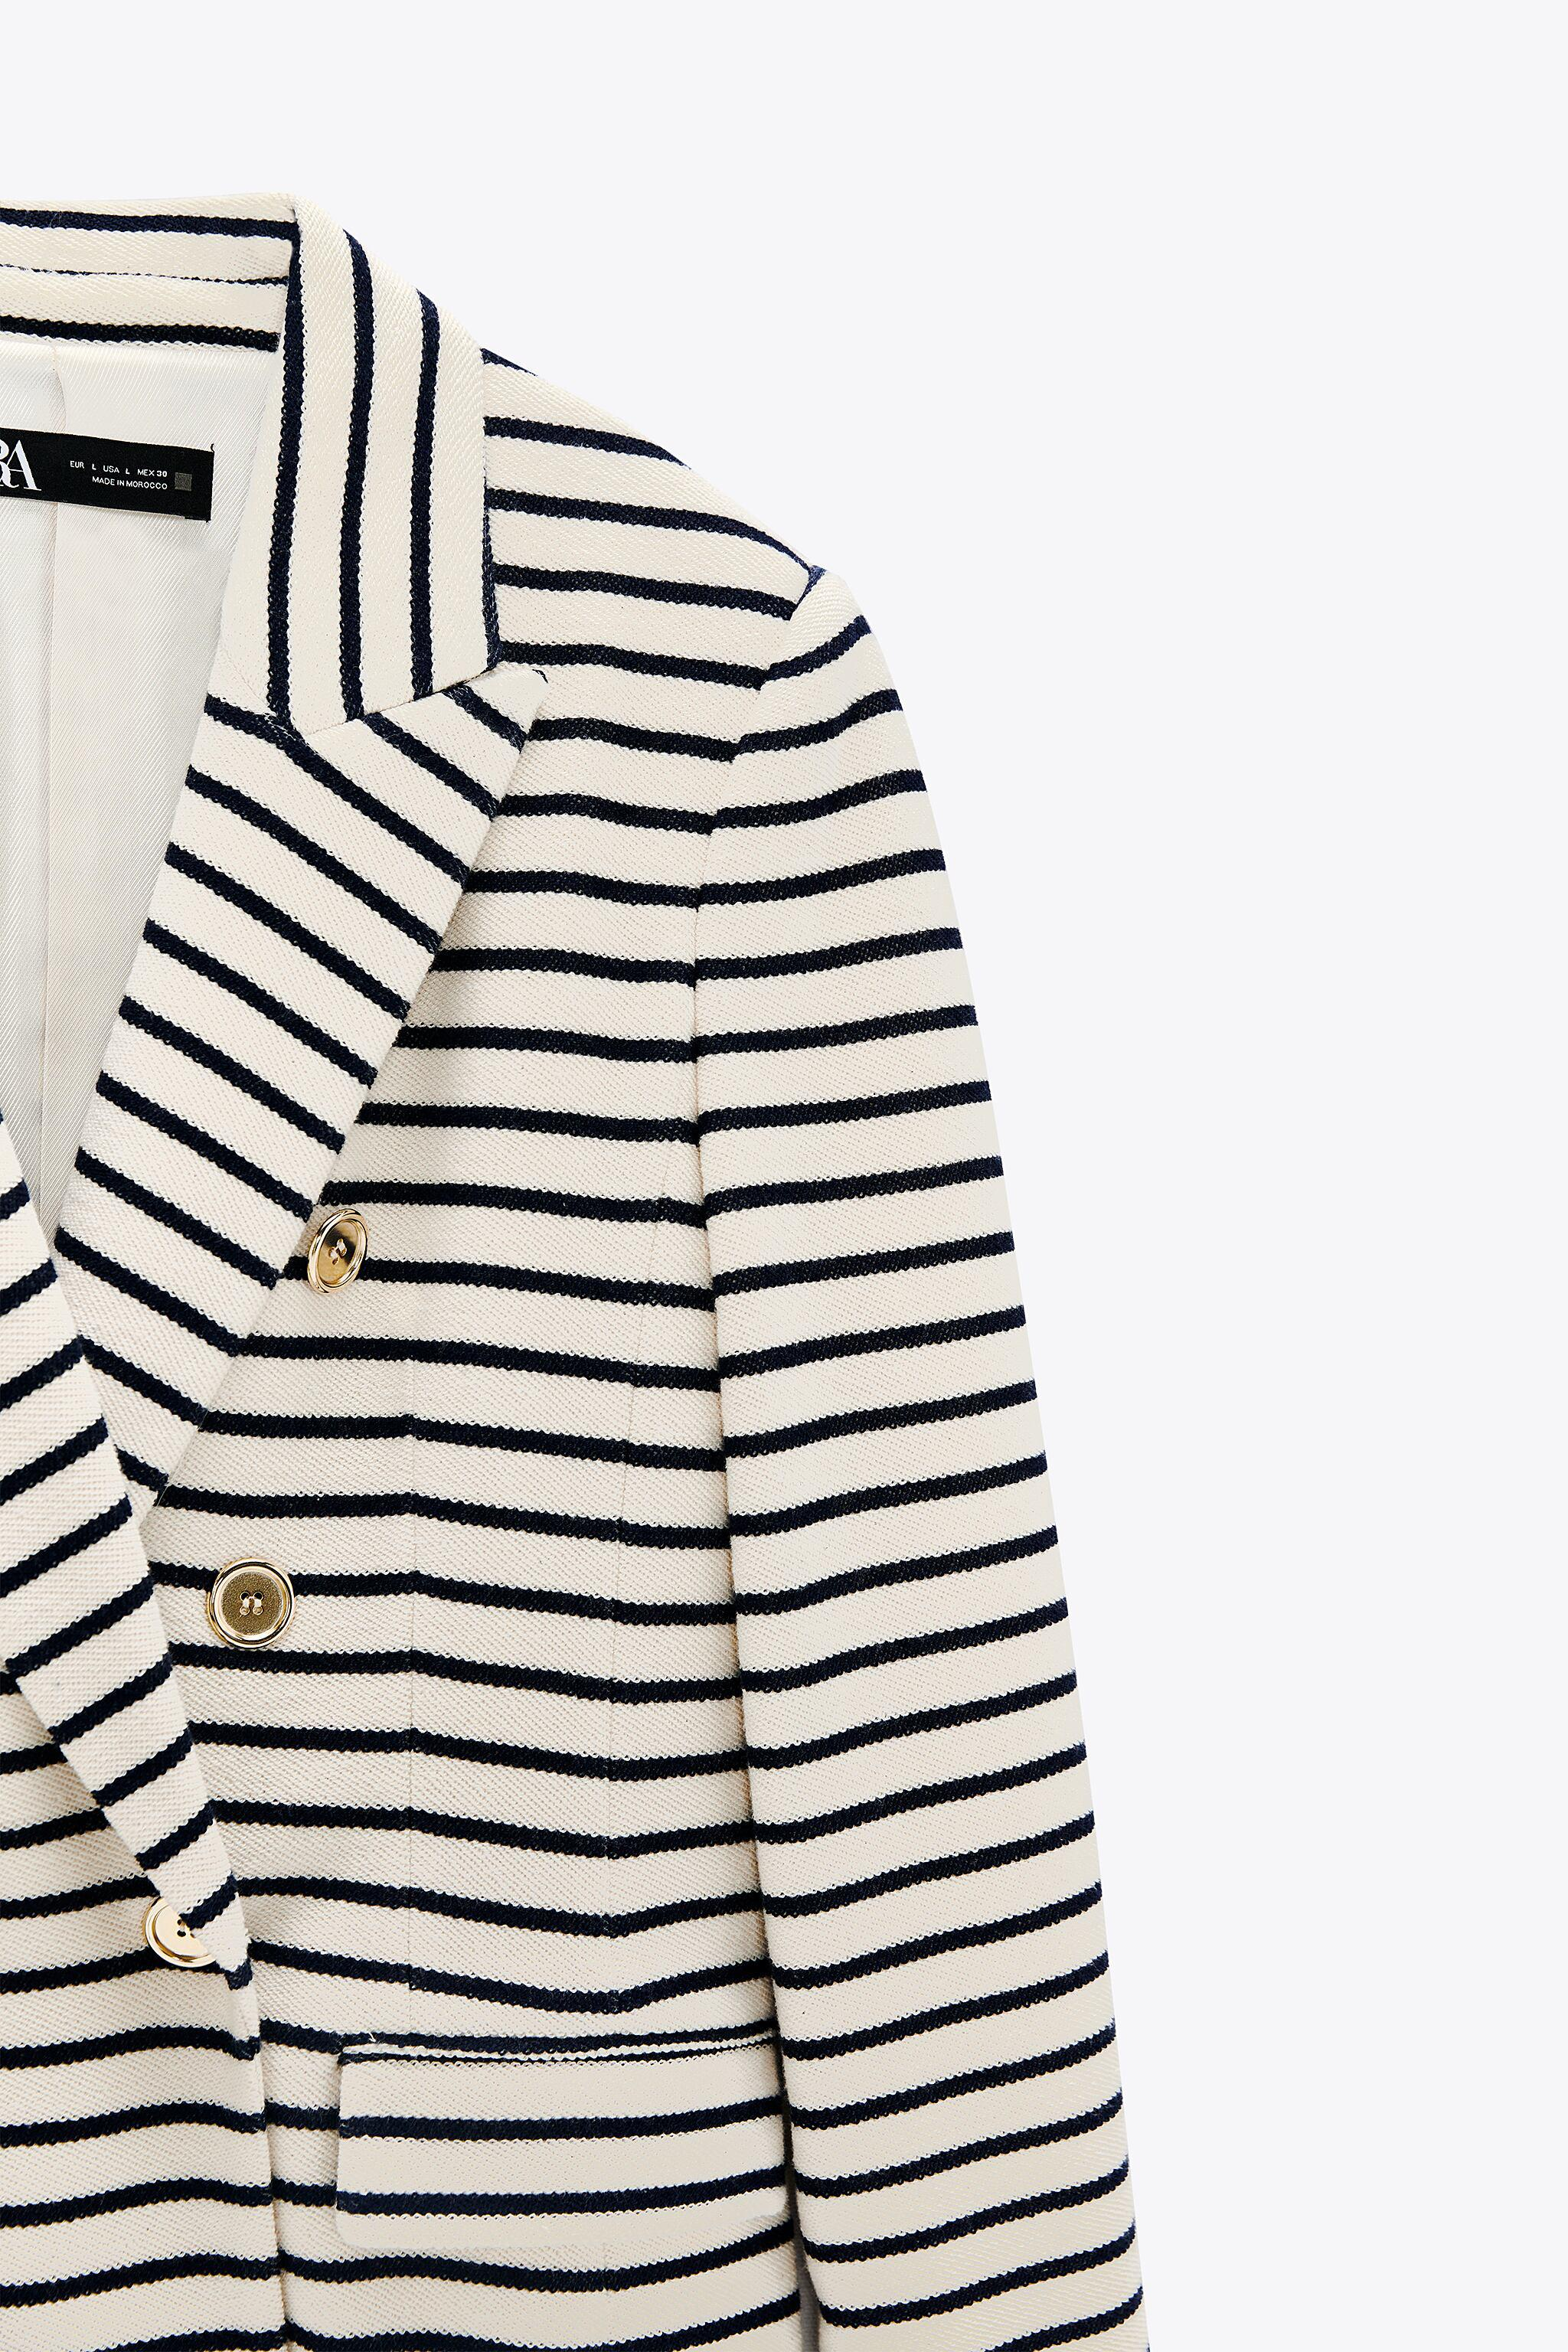 DOUBLE BREASTED STRIPED BLAZER 8